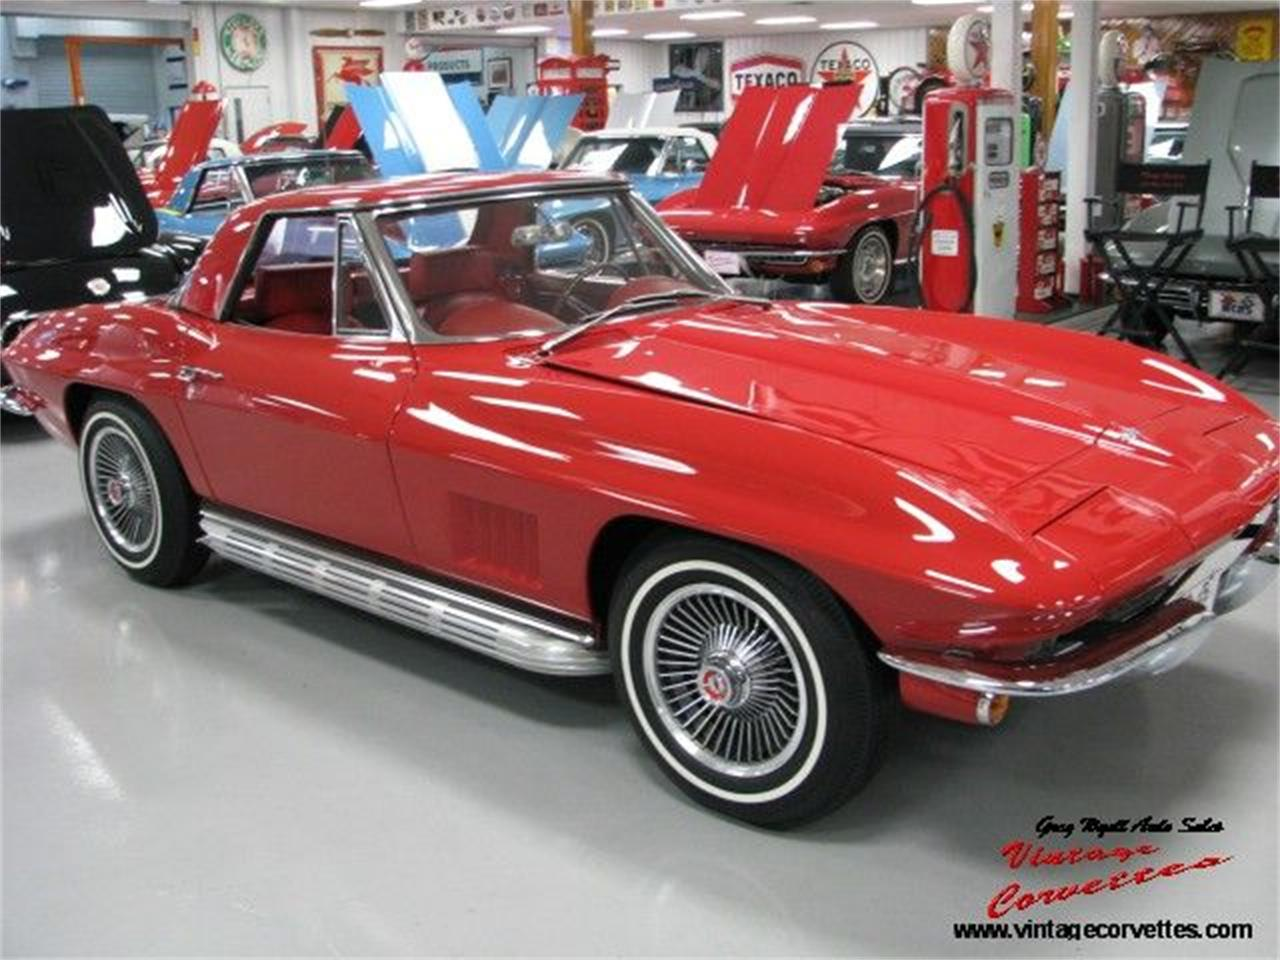 1967 Chevrolet Corvette (CC-1051619) for sale in Summerville, Georgia